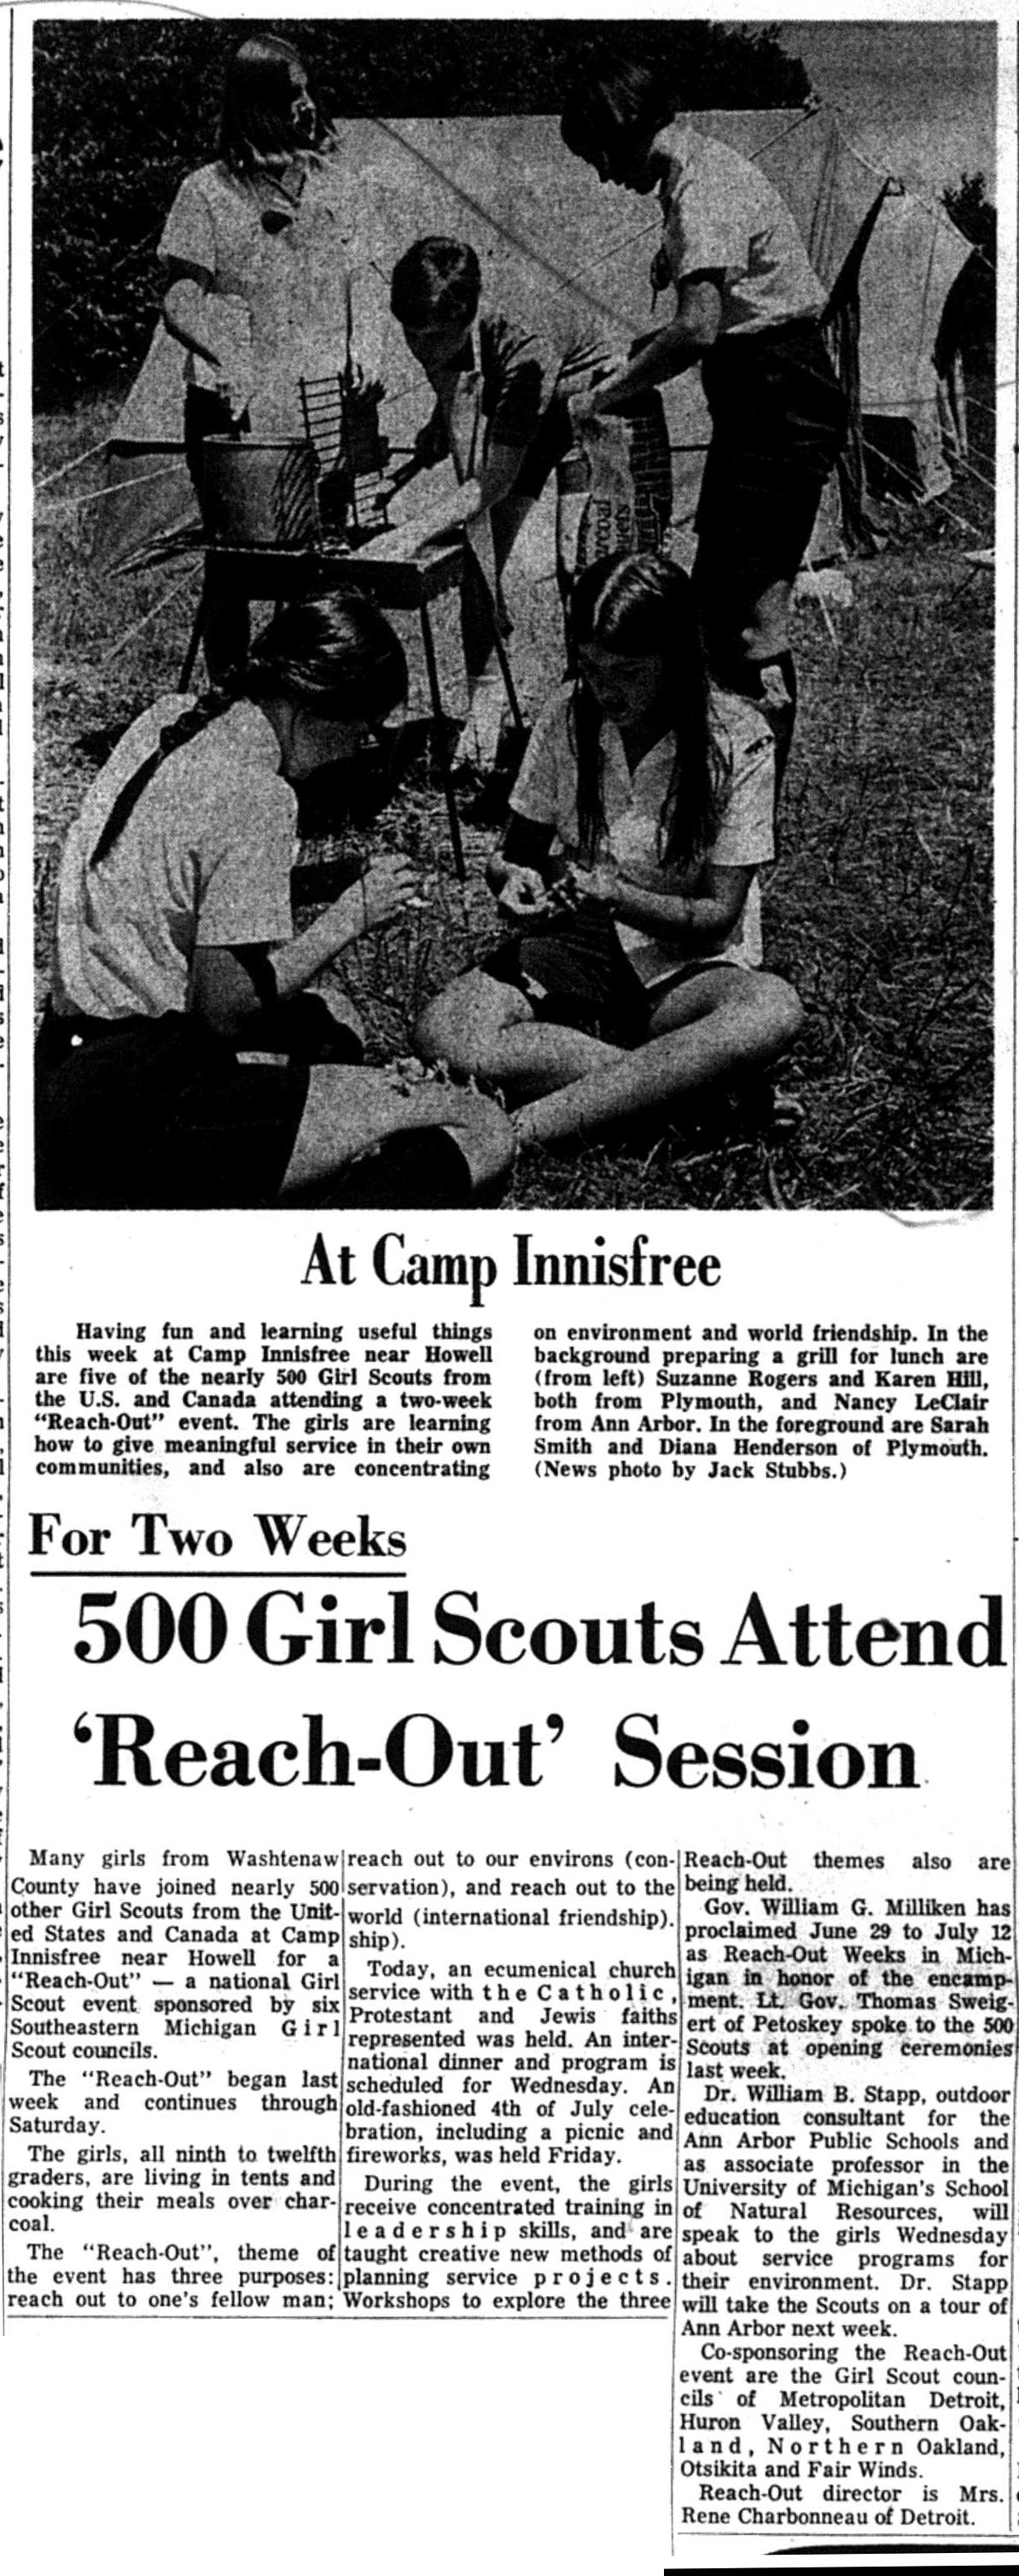 500 Girl Scouts Attend 'Reach-Out' Session image